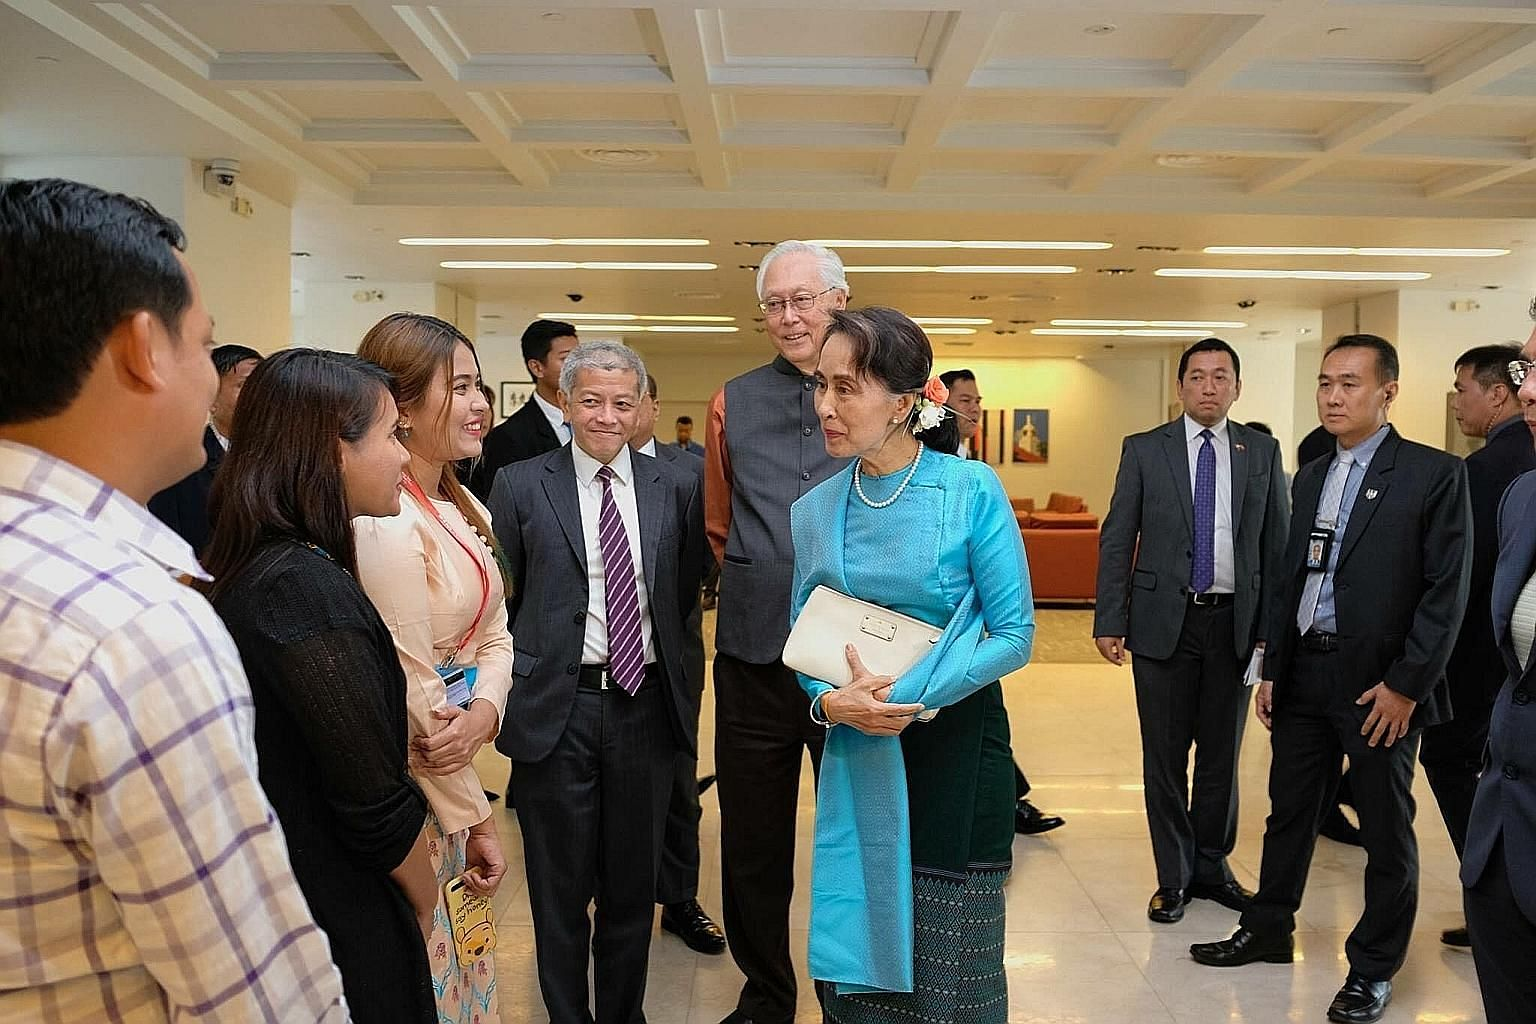 Above: Myanmar's State Counsellor Aung San Suu Kyi, who is here for a four-day working visit, was hosted to dinner yesterday by Foreign Minister Vivian Balakrishnan (left, with his wife) at his home. Dr Balakrishnan said in a Facebook post that it wa